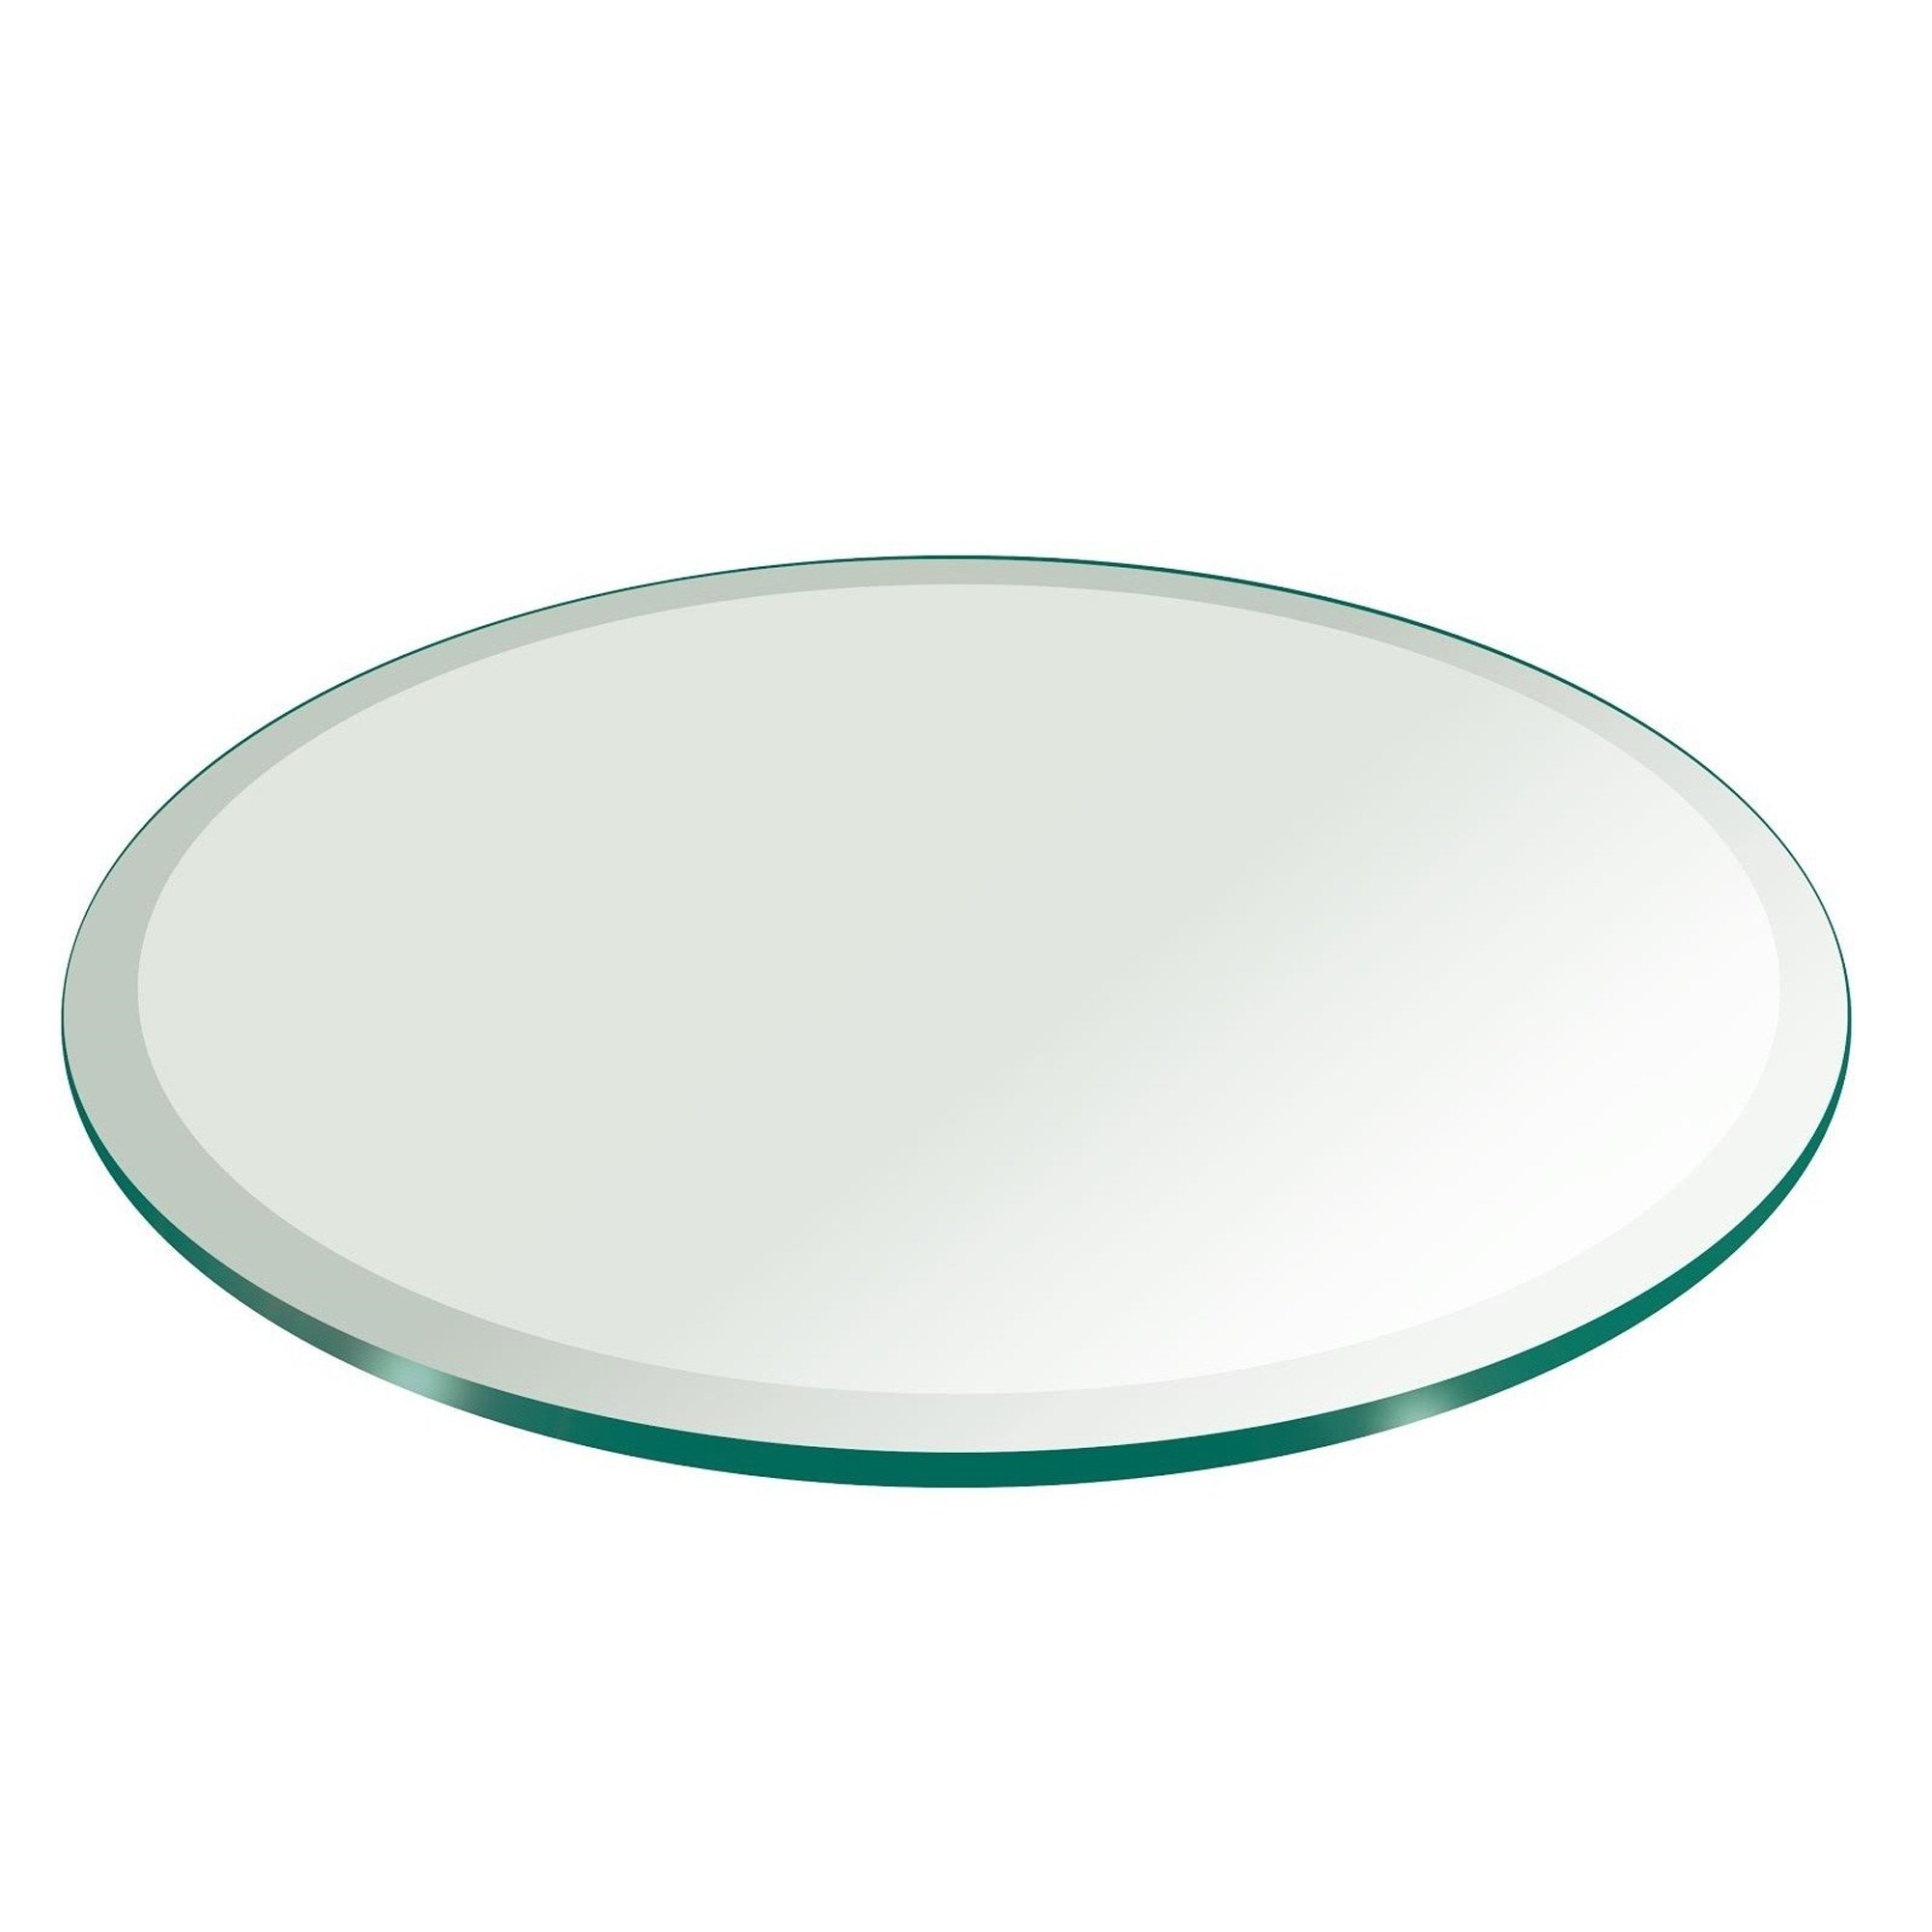 18'' Inch Round Glass Table Top 1/2'' Thick Tempered Beveled Edge by Fab Glass and Mirror